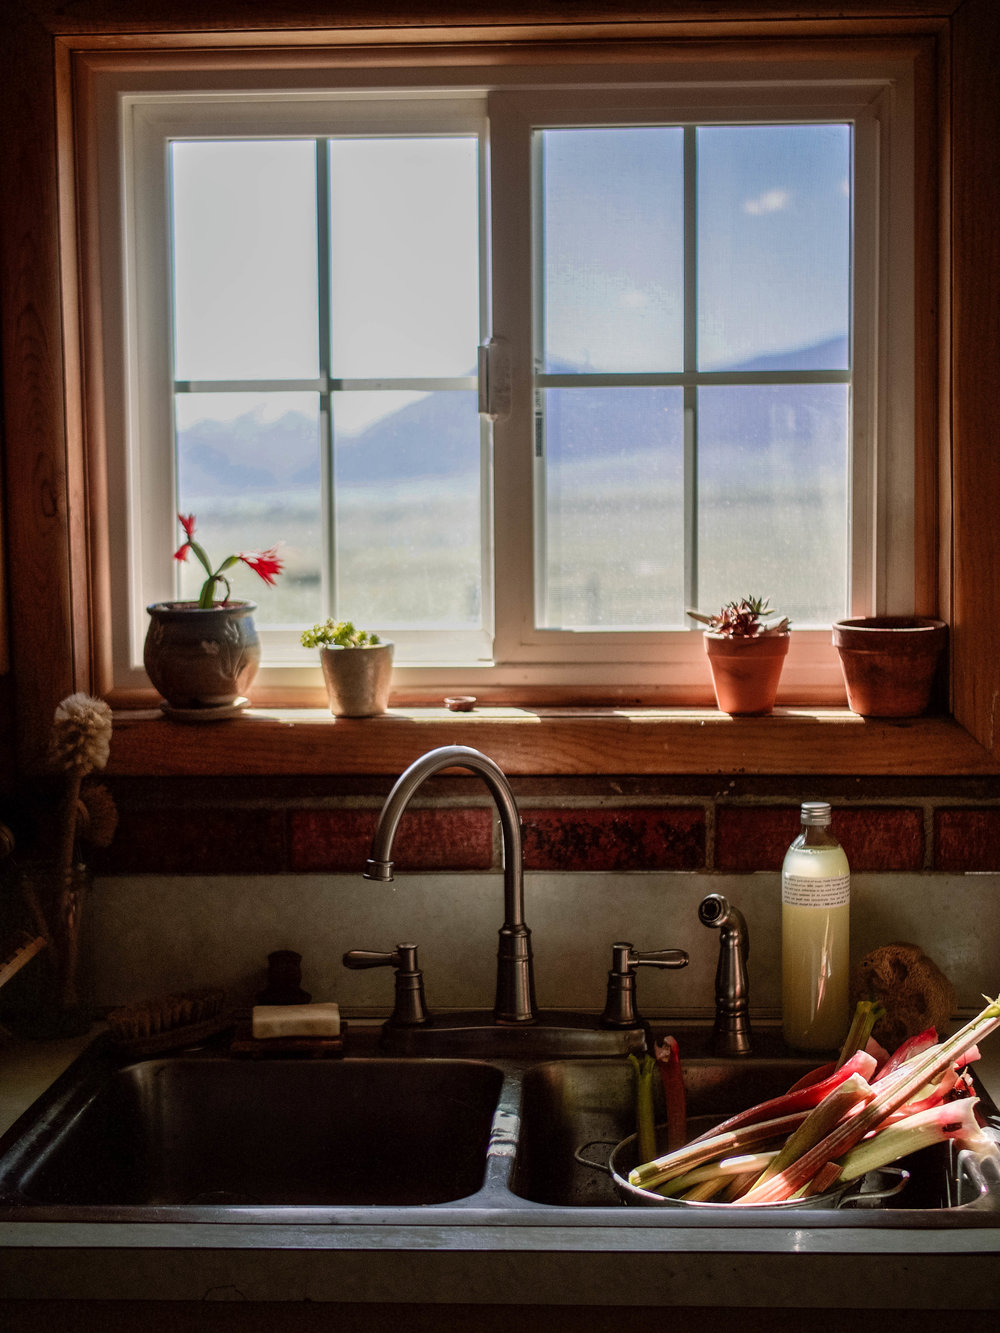 kitchen window with rhubarb